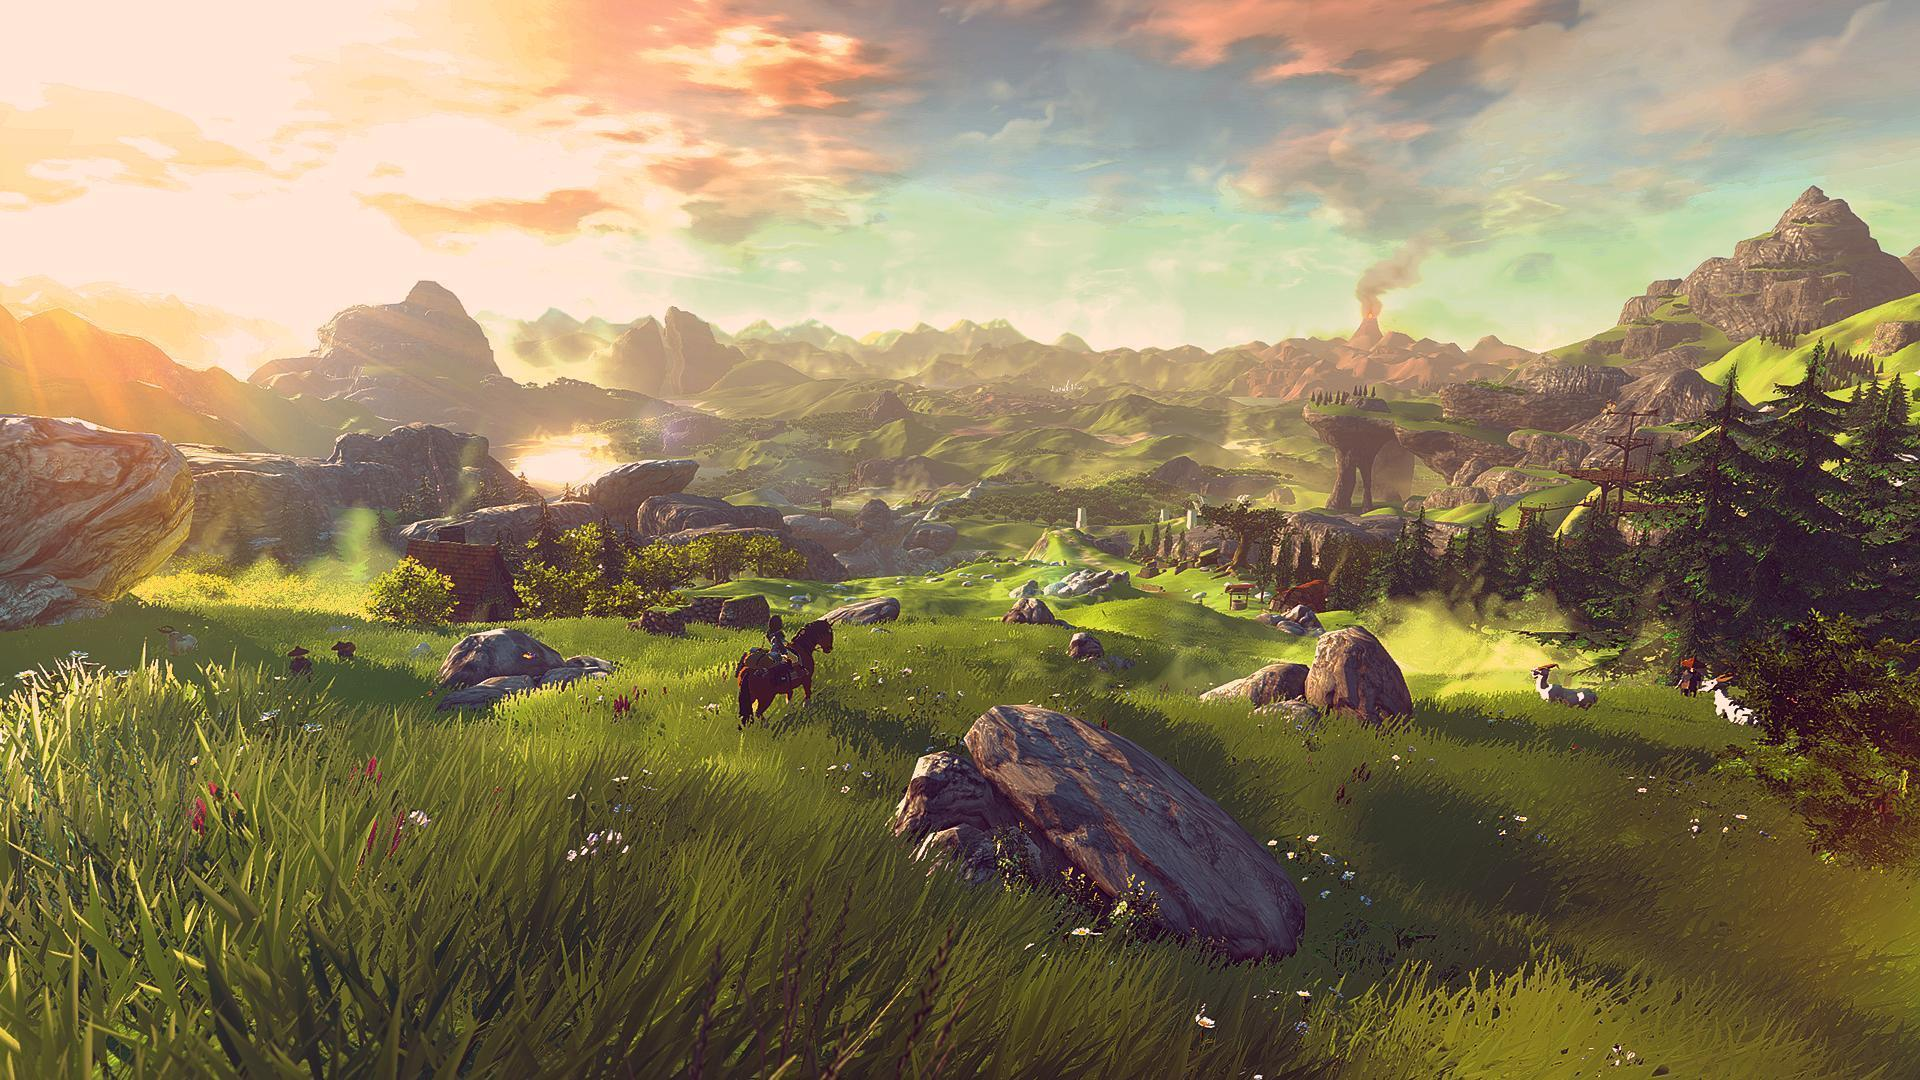 Hd wallpaper zelda - Games That People Are Waiting For This Year As They Will Play The